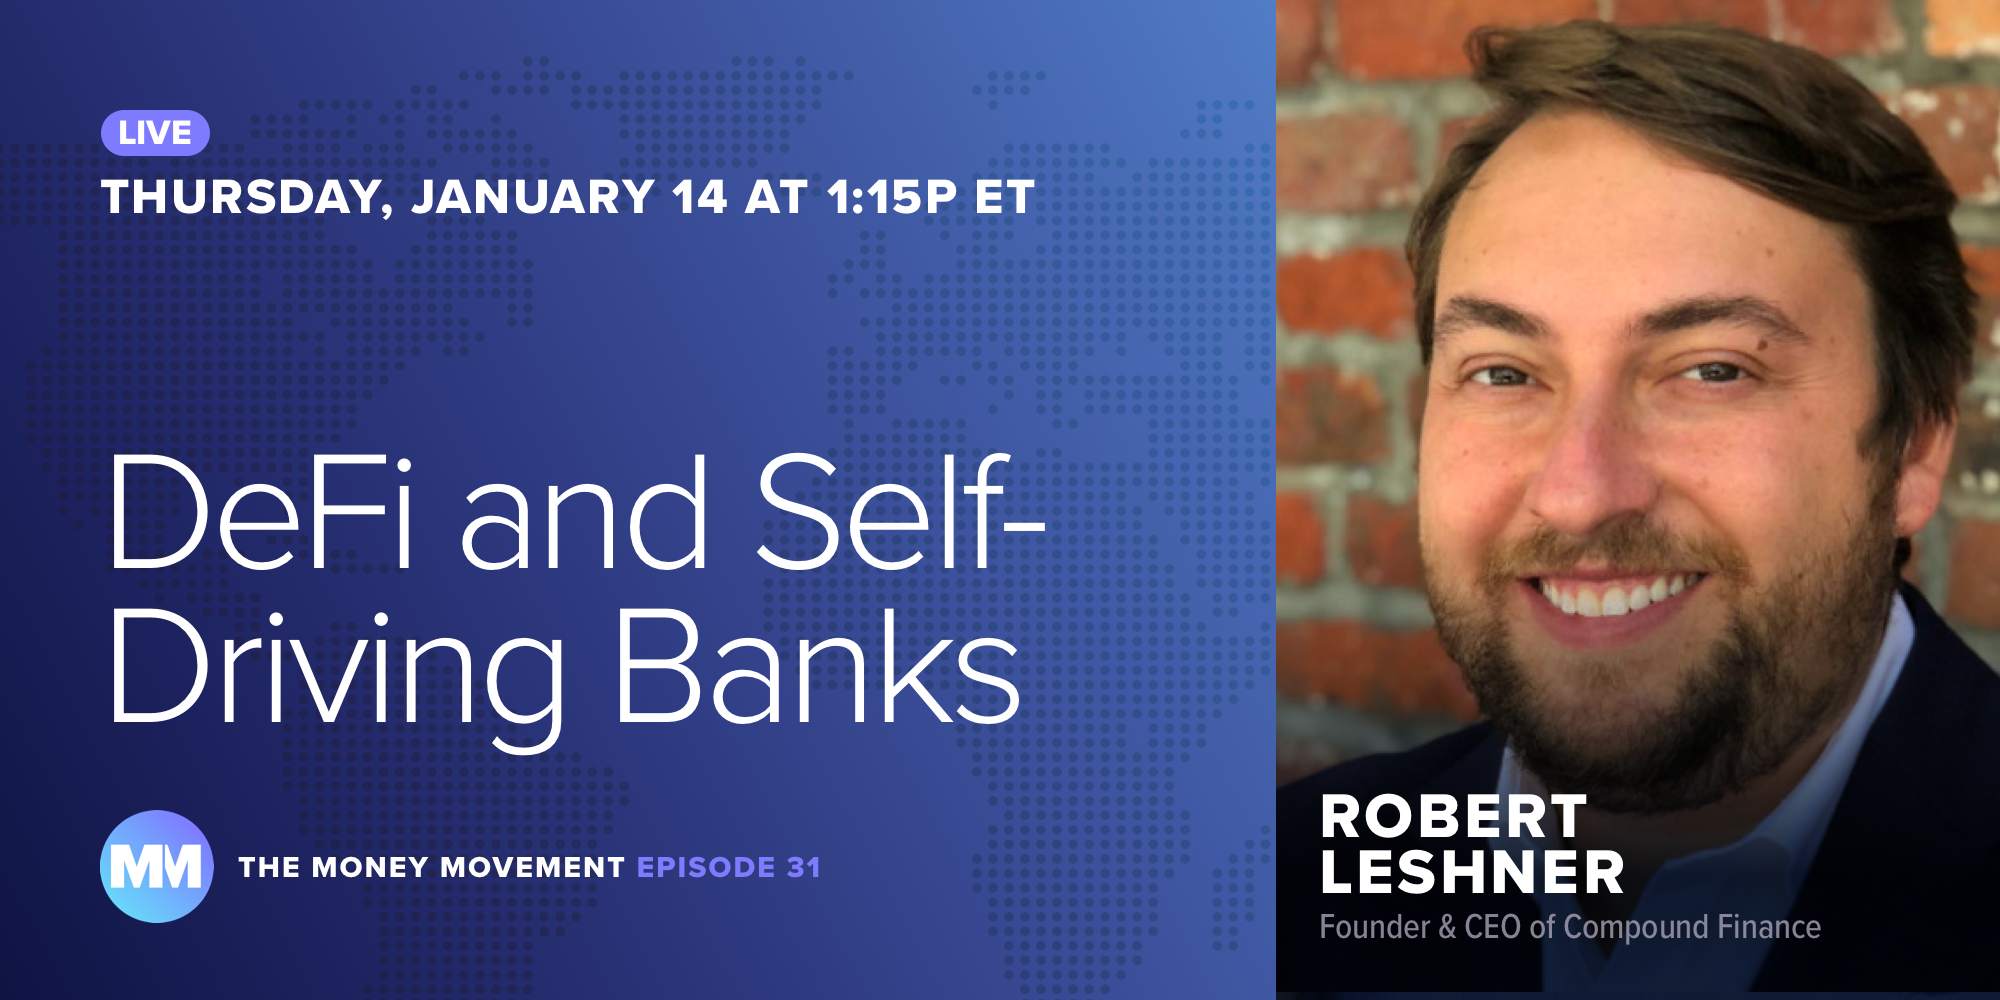 Episode 31: DeFi and Self-Driving Banks